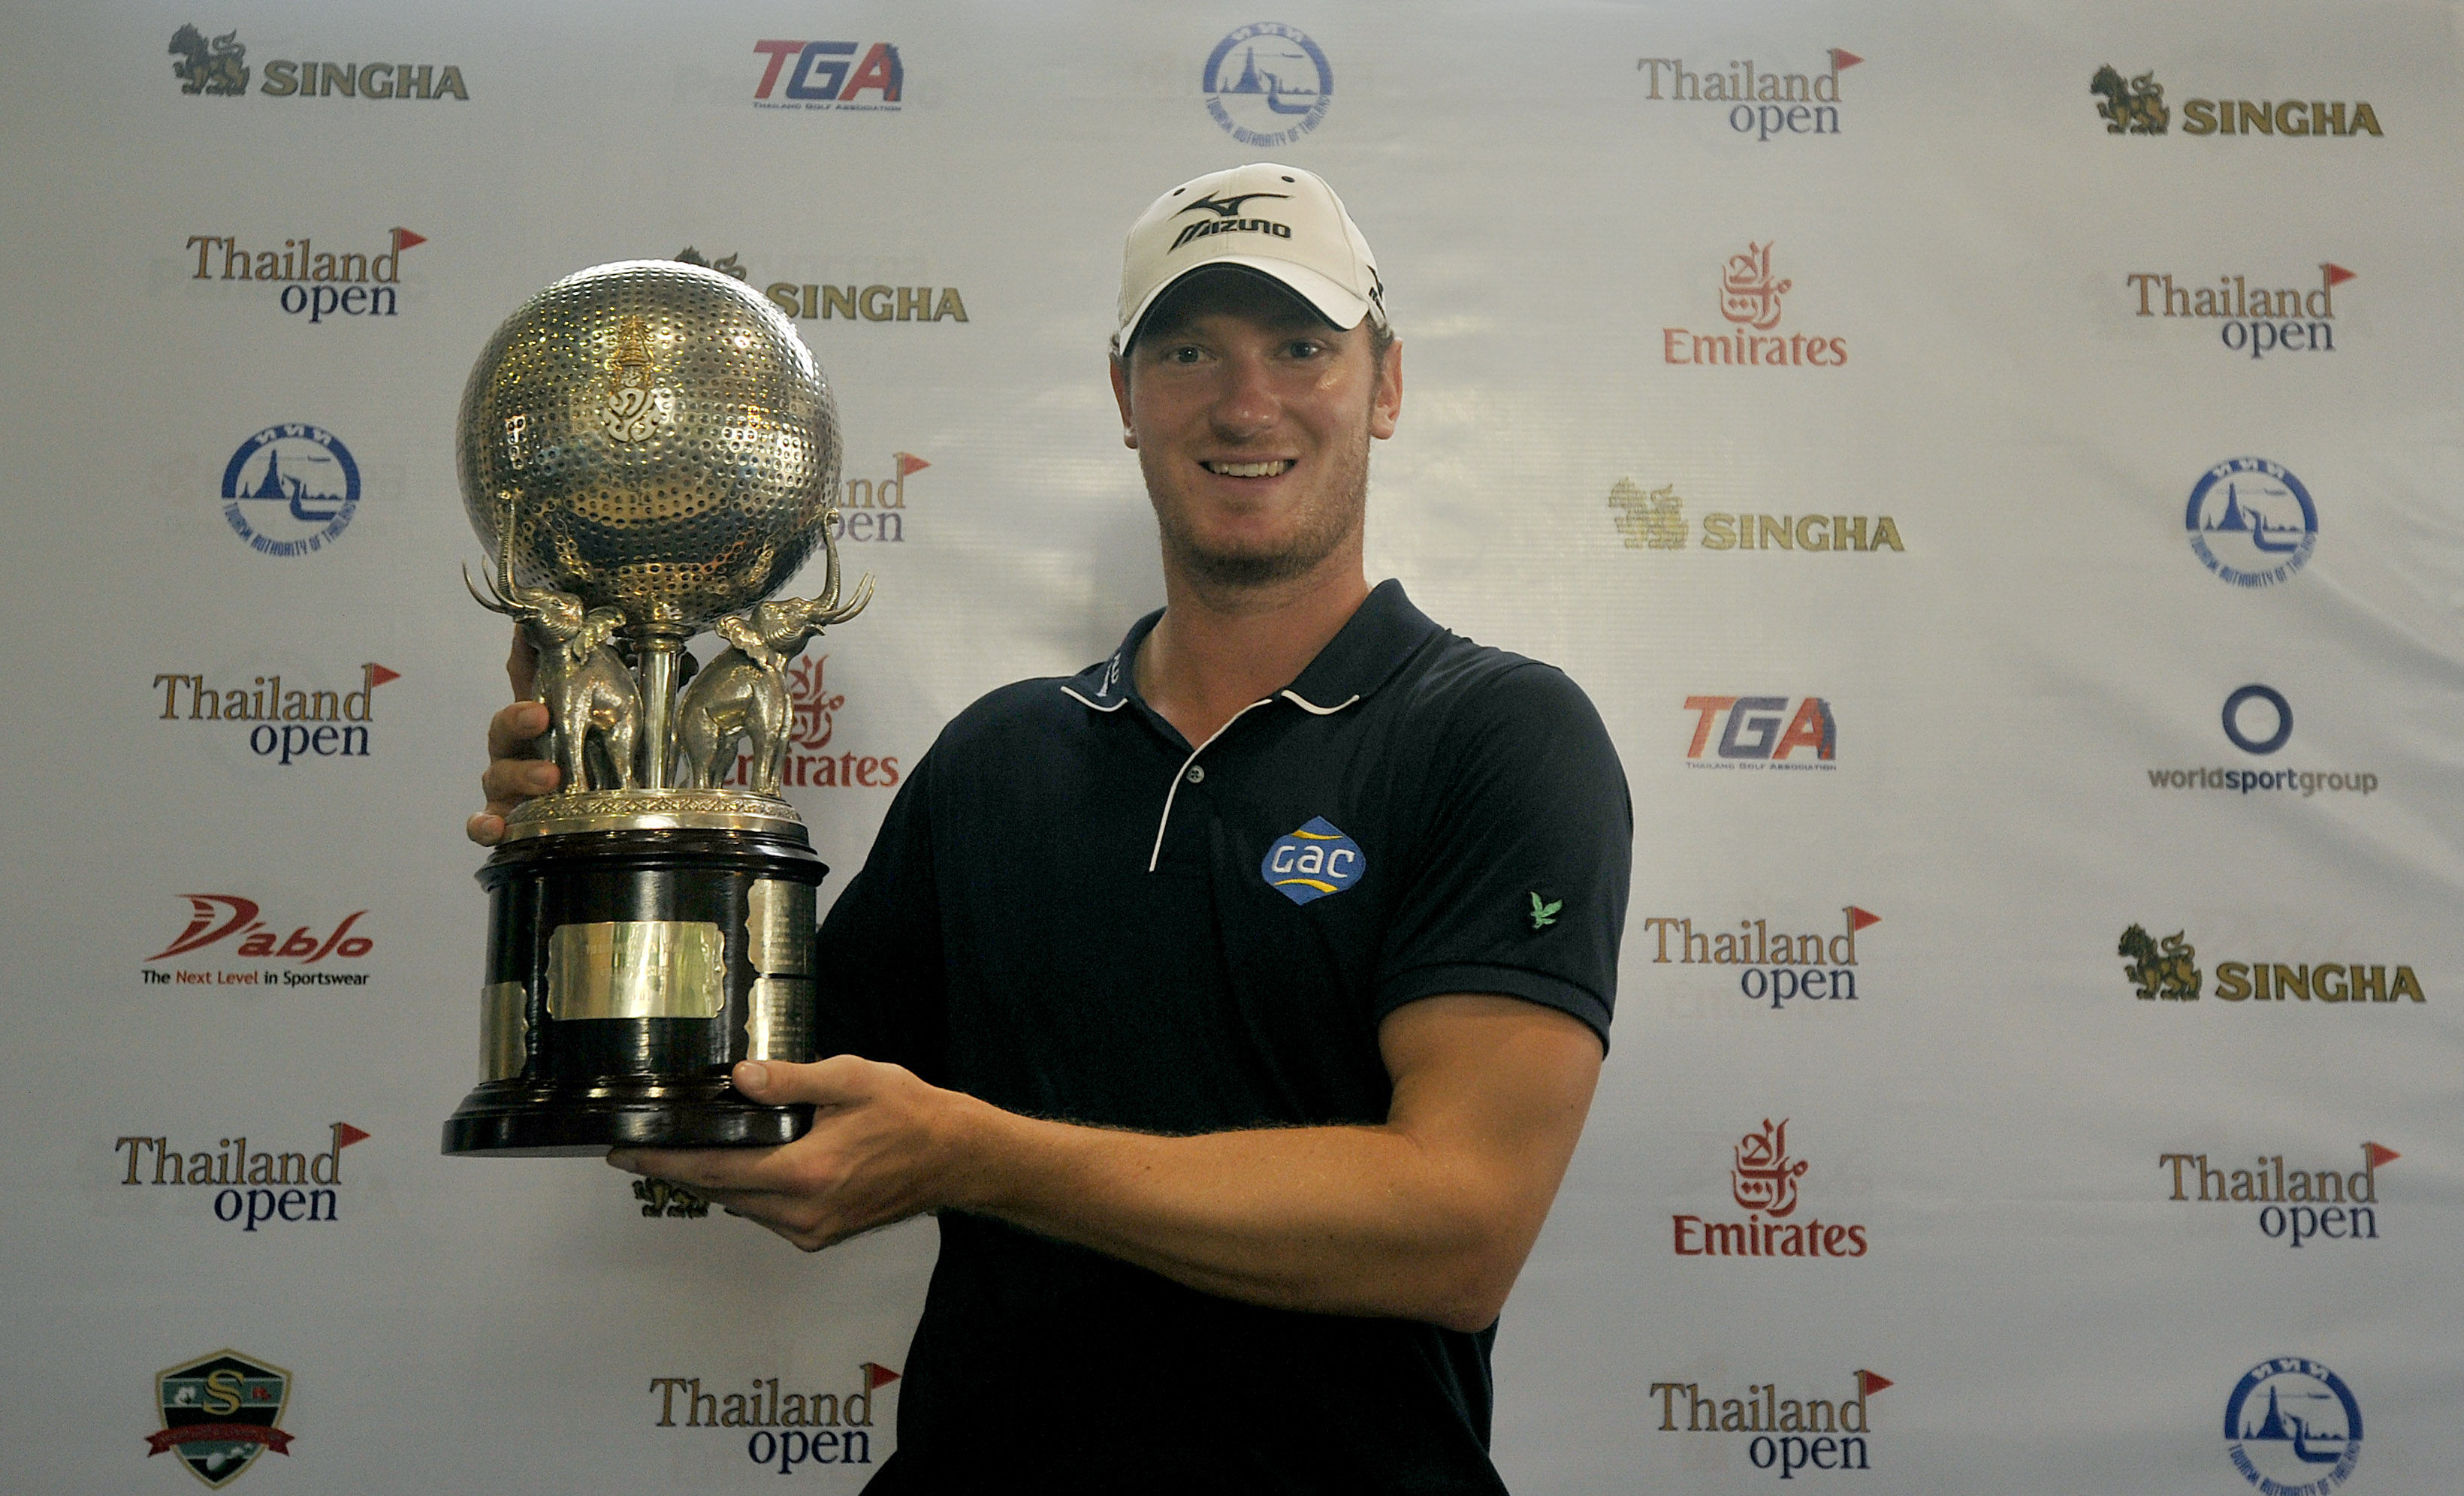 BANGKOK_THAILAND_CHRIS_WOOD_120812_013